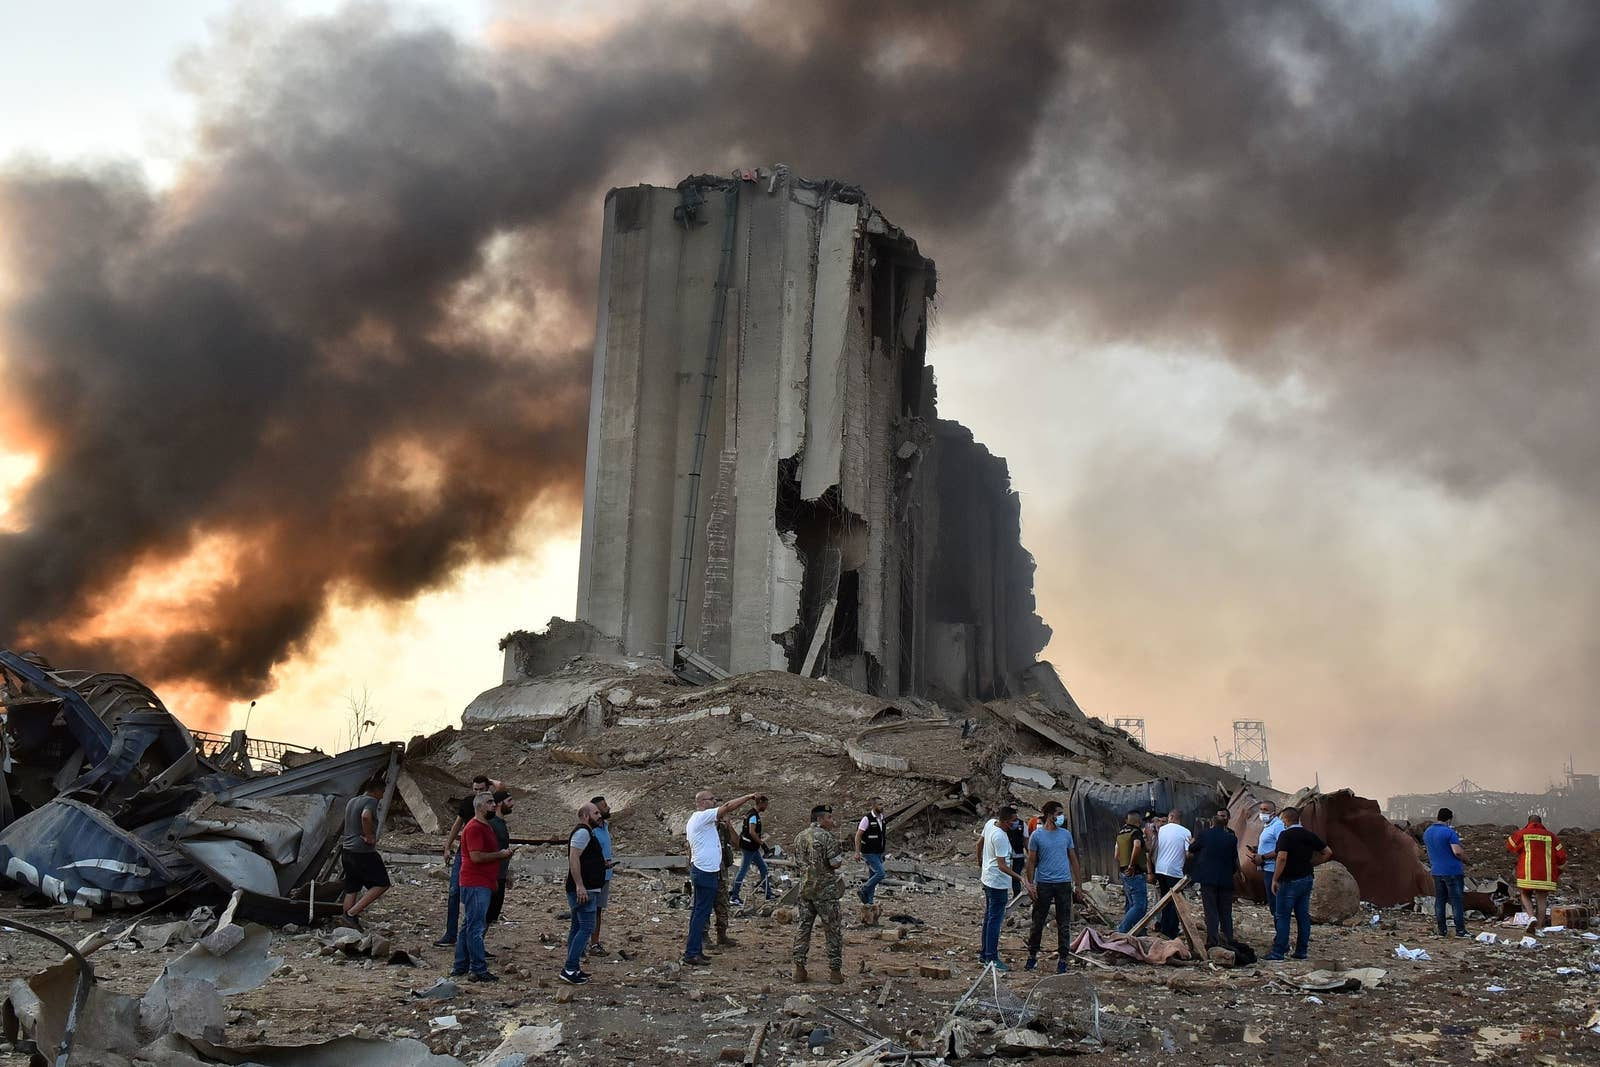 Black smoke rises into the air behind a destroyed grain silo, where a crowd of men in masks stand in shock following an explosion